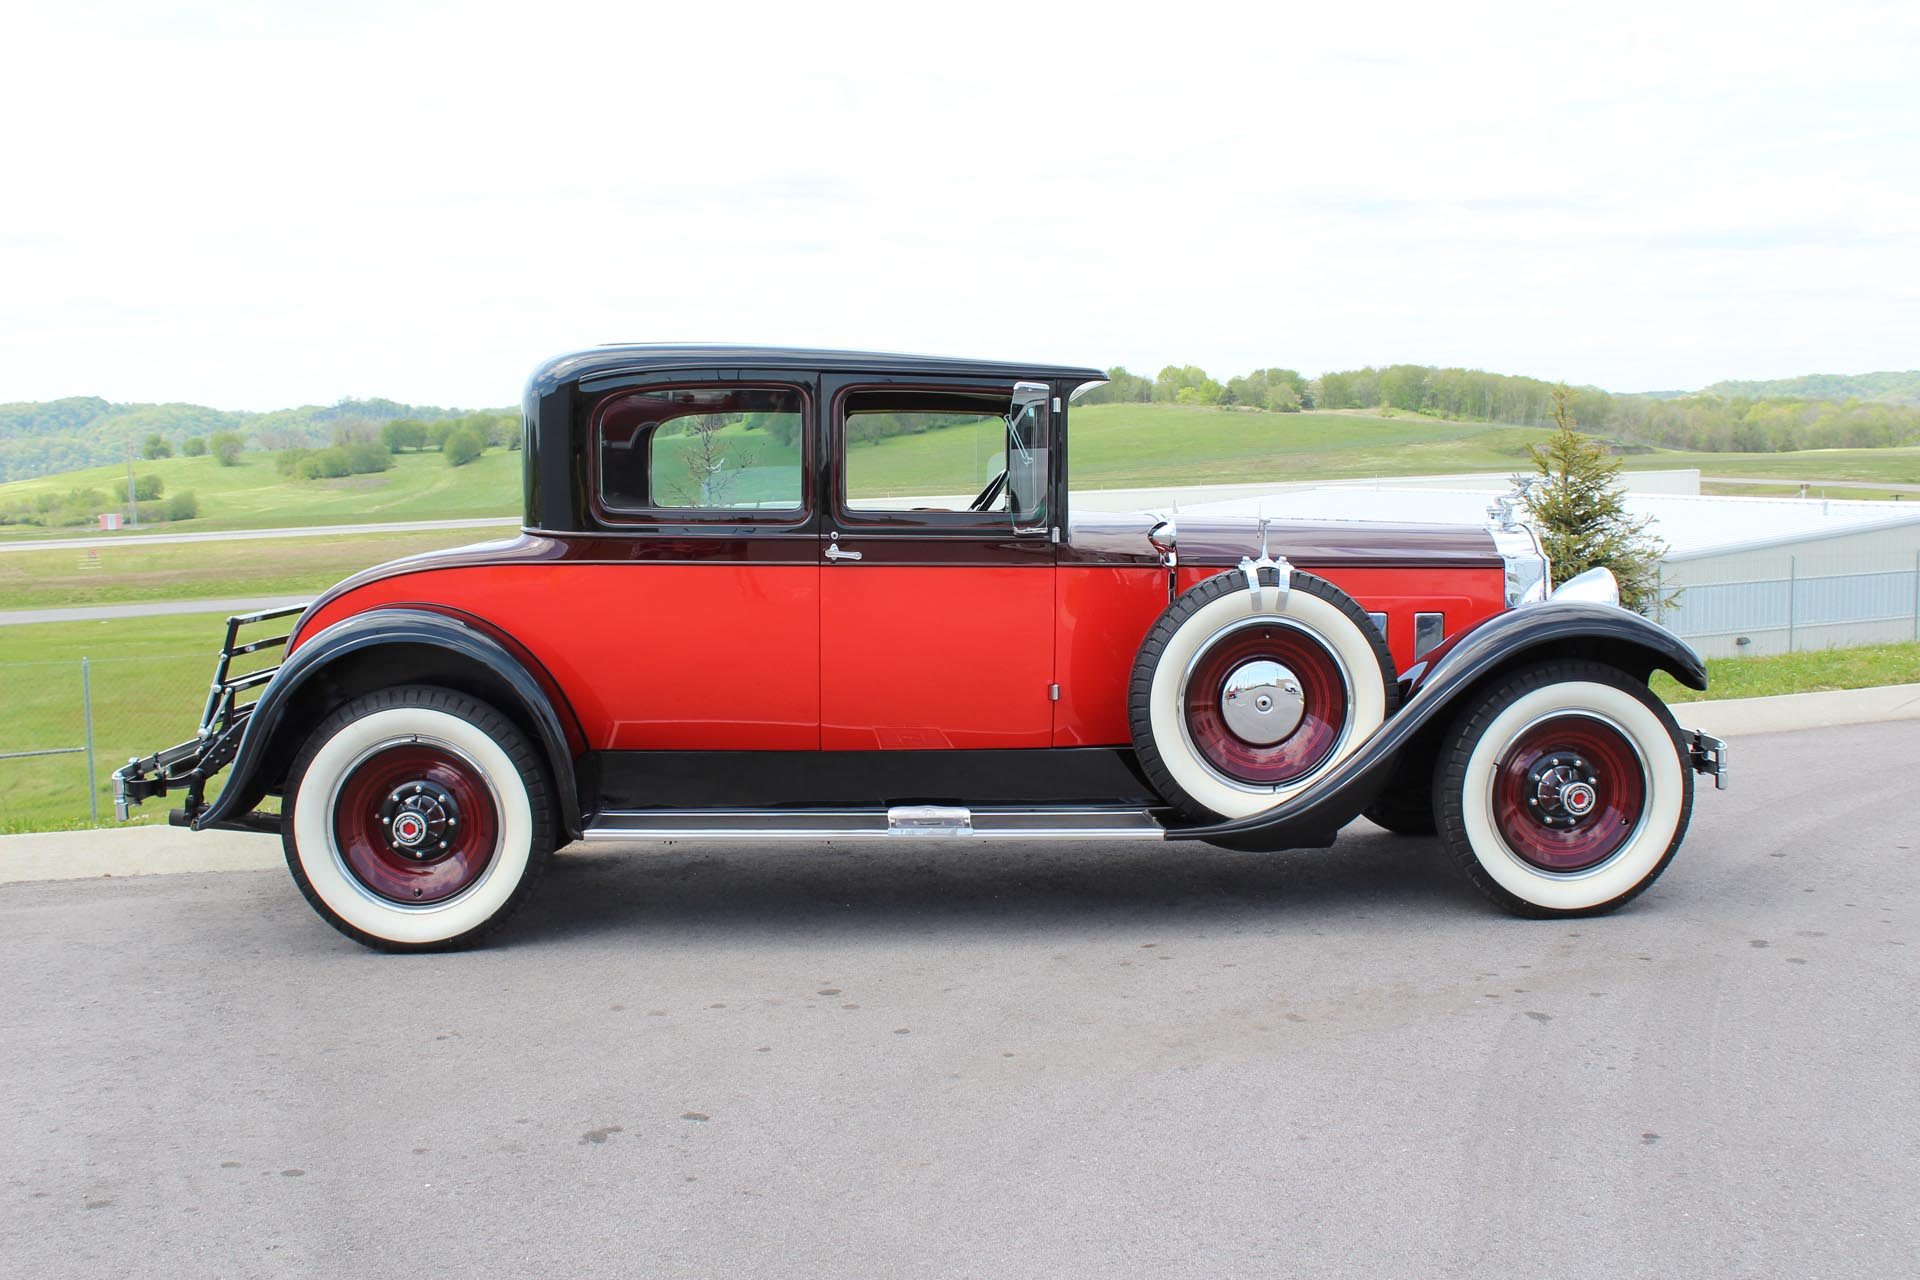 1929 Packard 640 Custom Eight 'Opera' Coupe